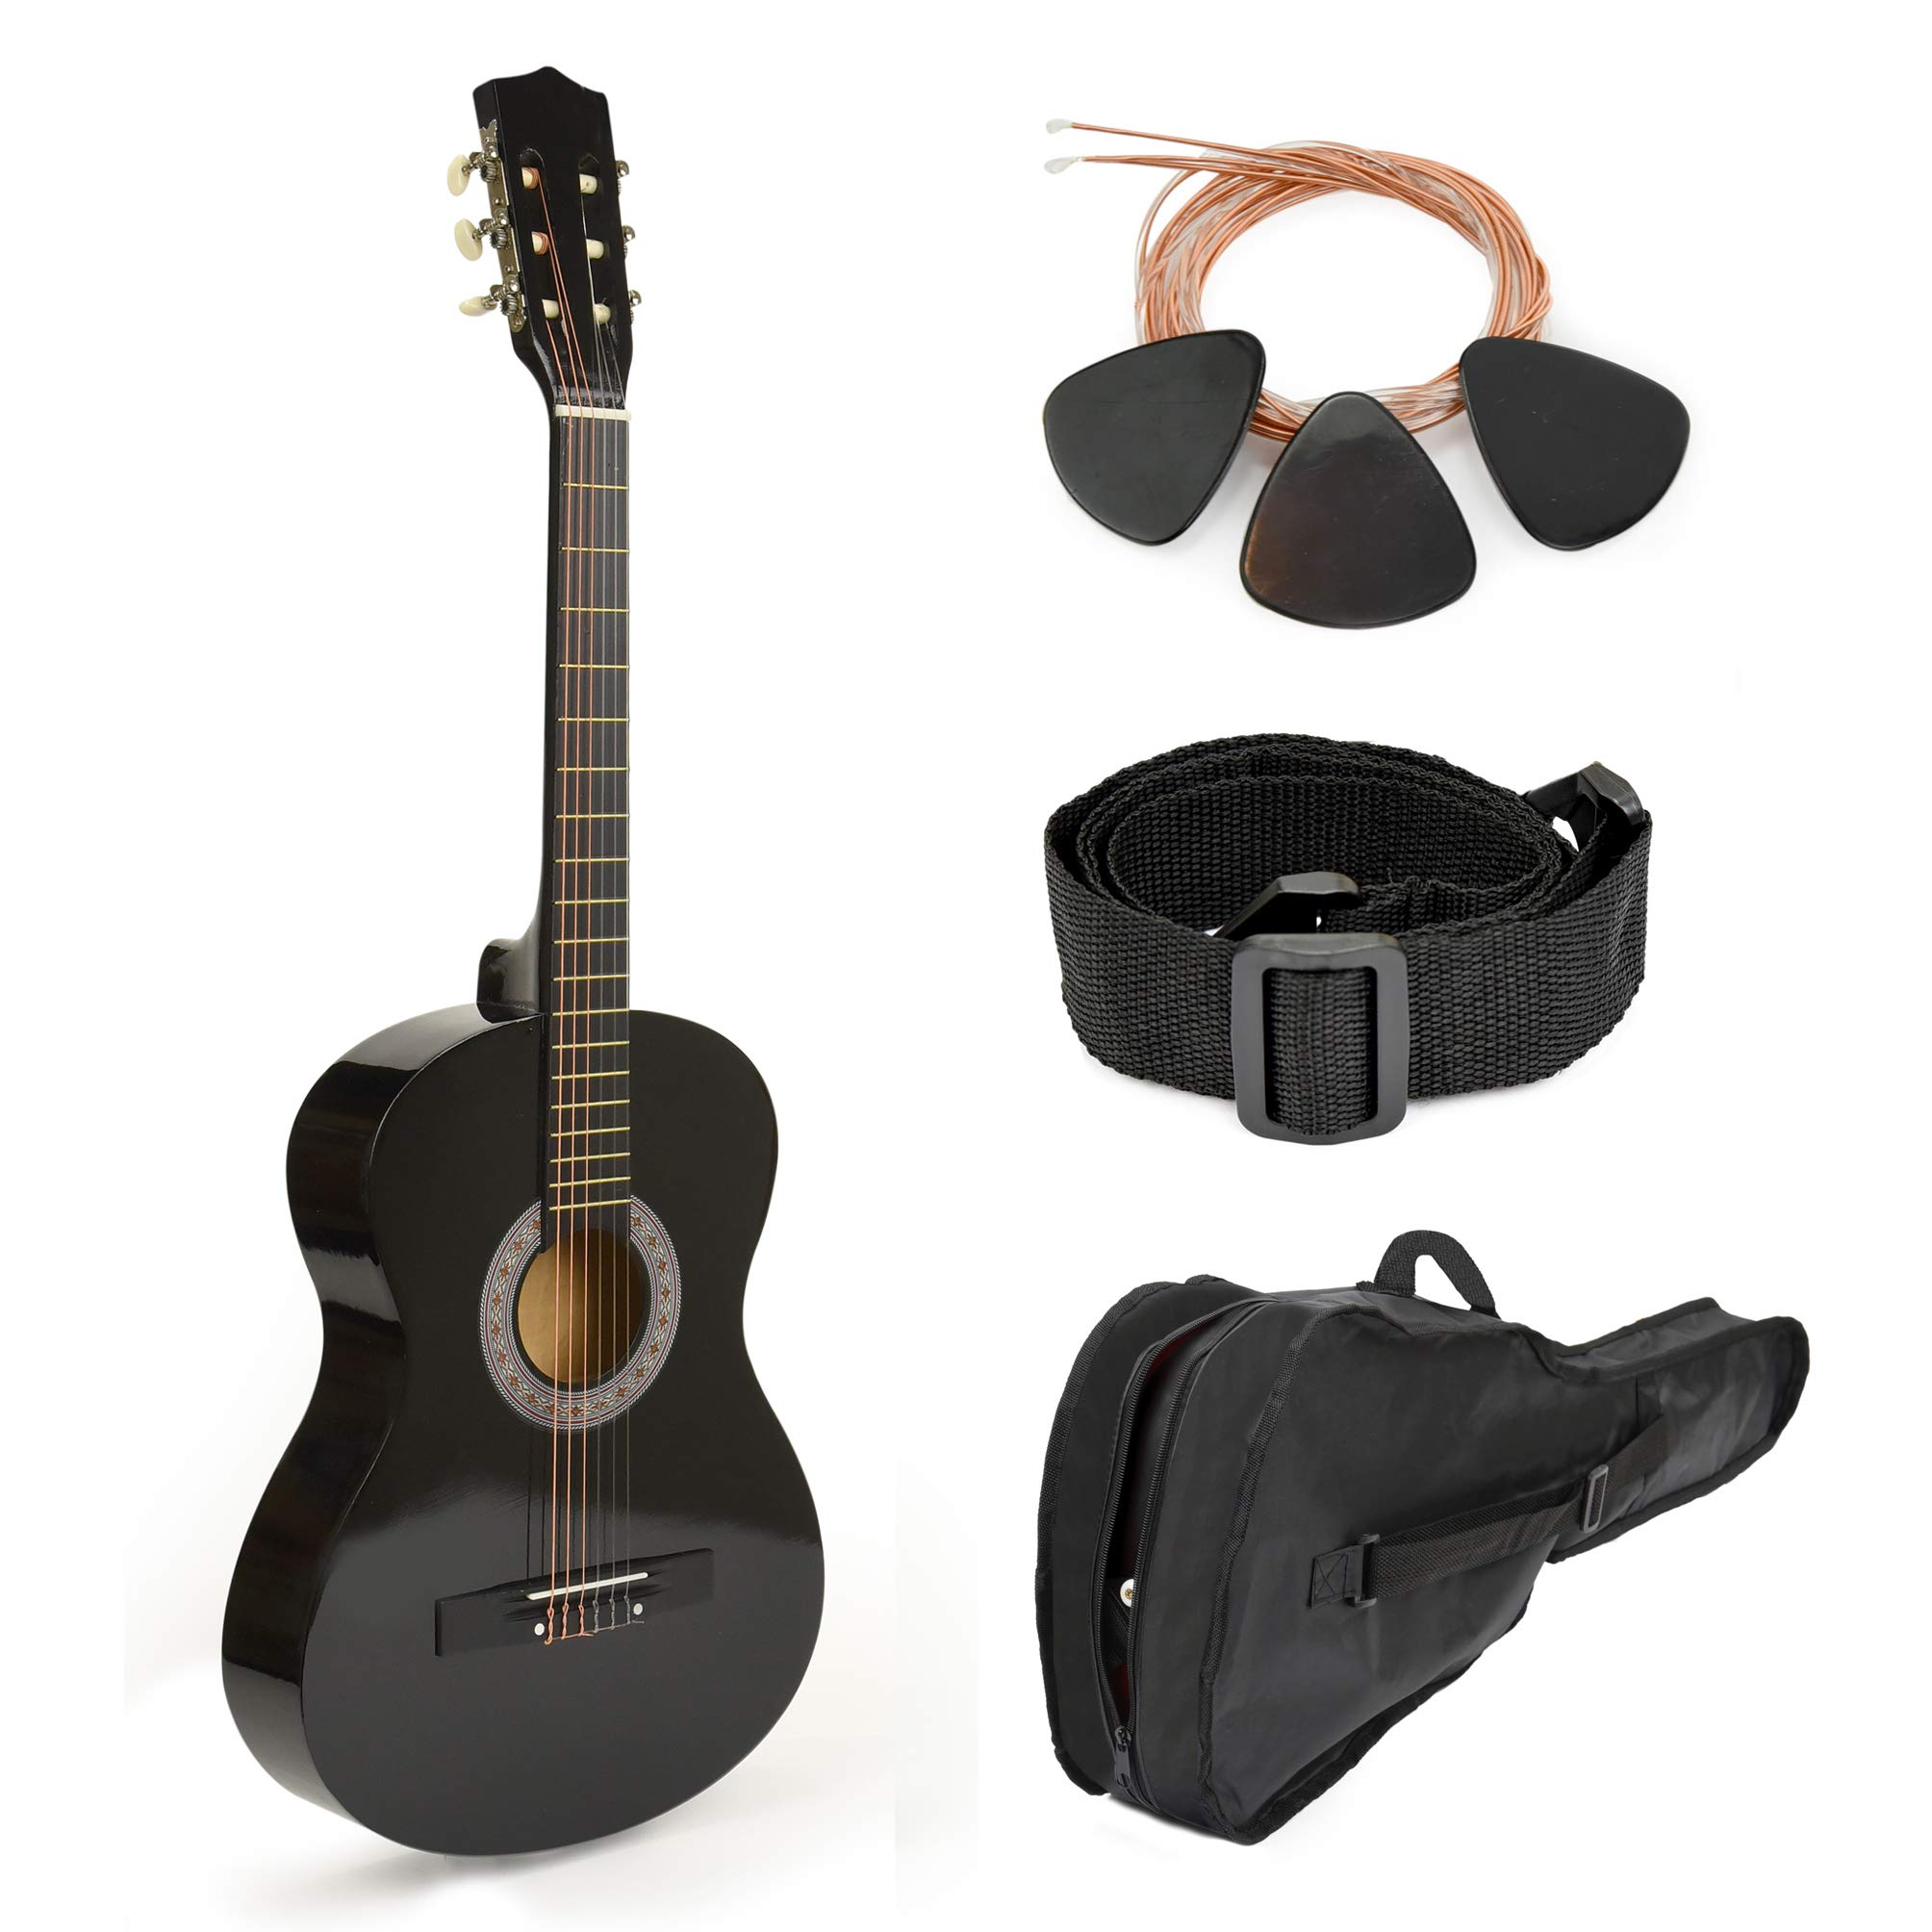 30'' Black Wood Guitar With Case and Accessories for Kids/Boys/Beginners